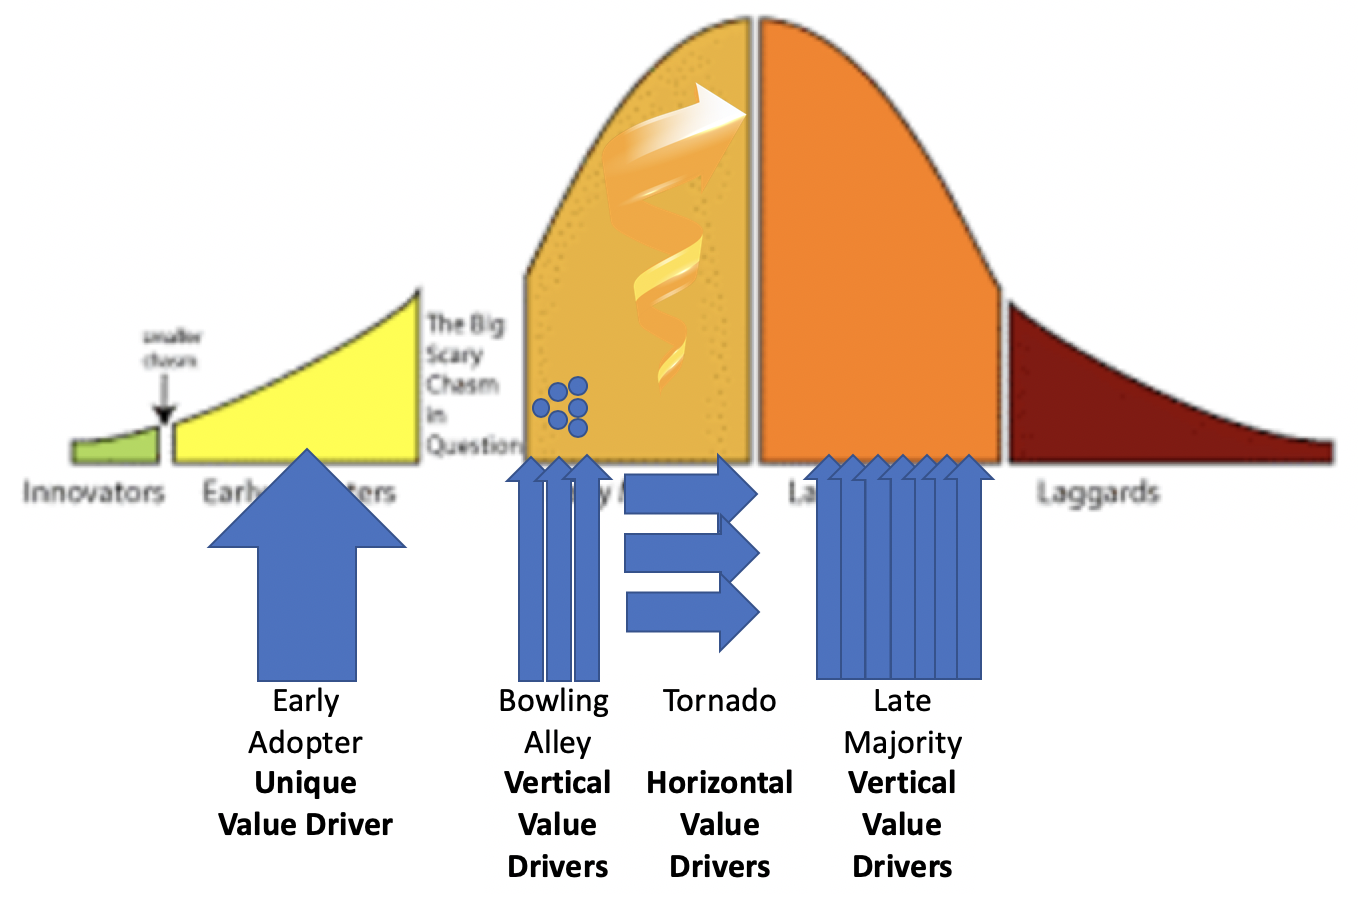 Value Drivers and Technology Adoption